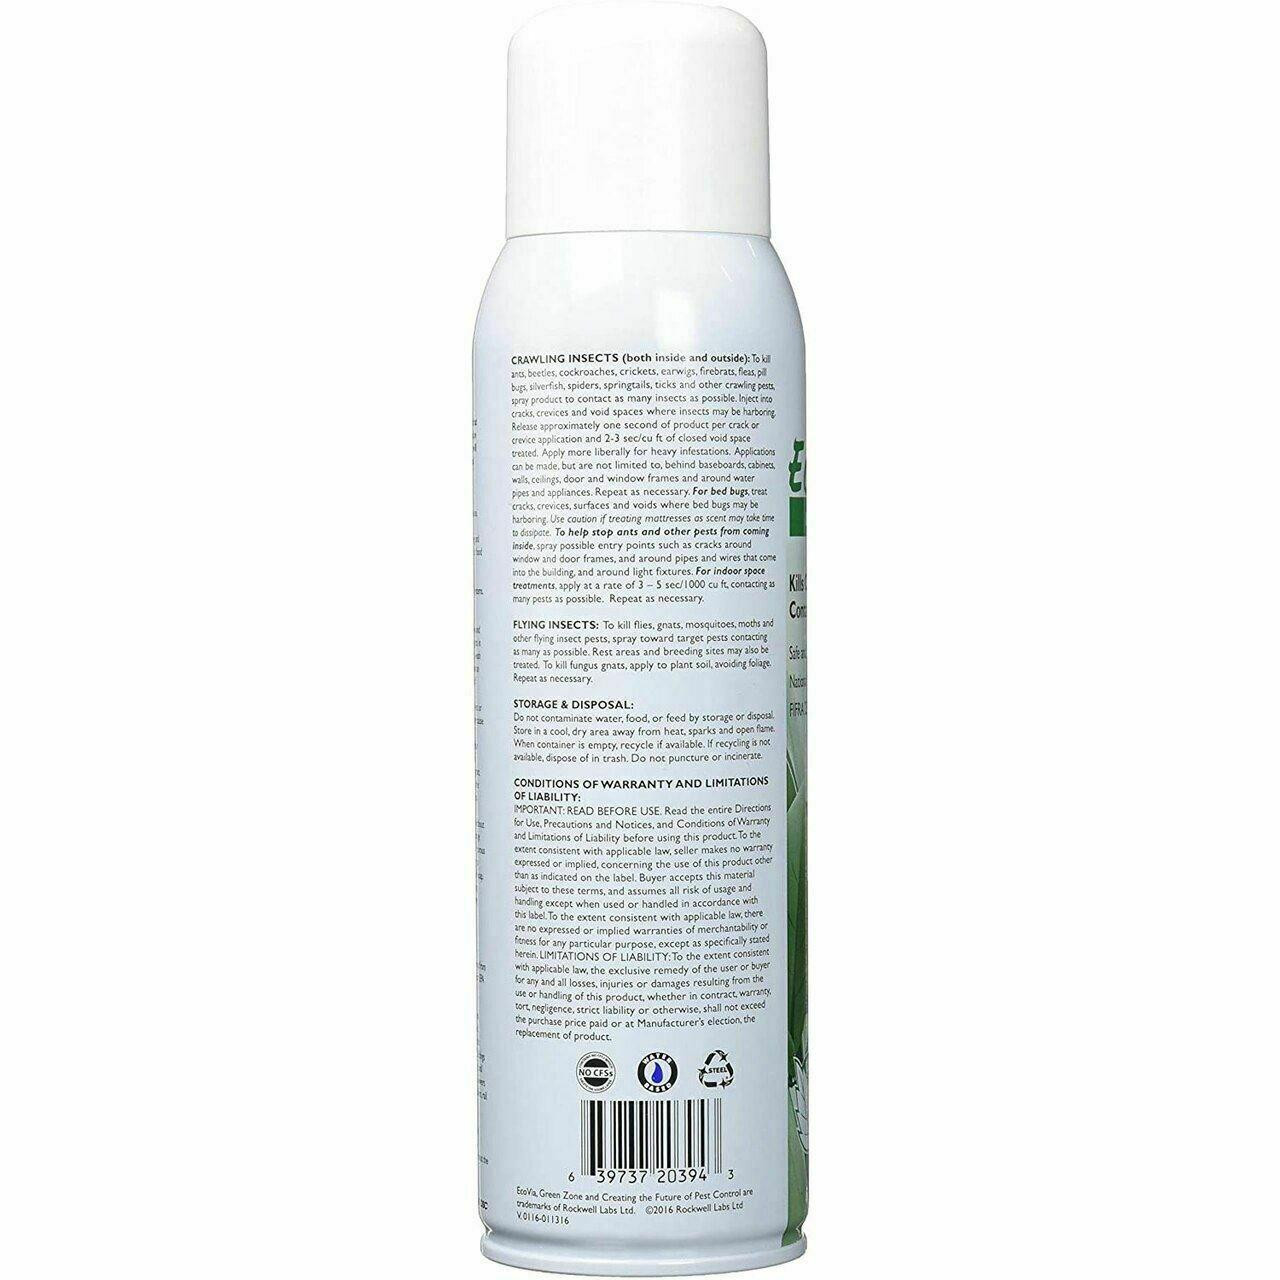 Rockwell Labs EVCA016 EcoVia CA Insecticide Contact Aerosol